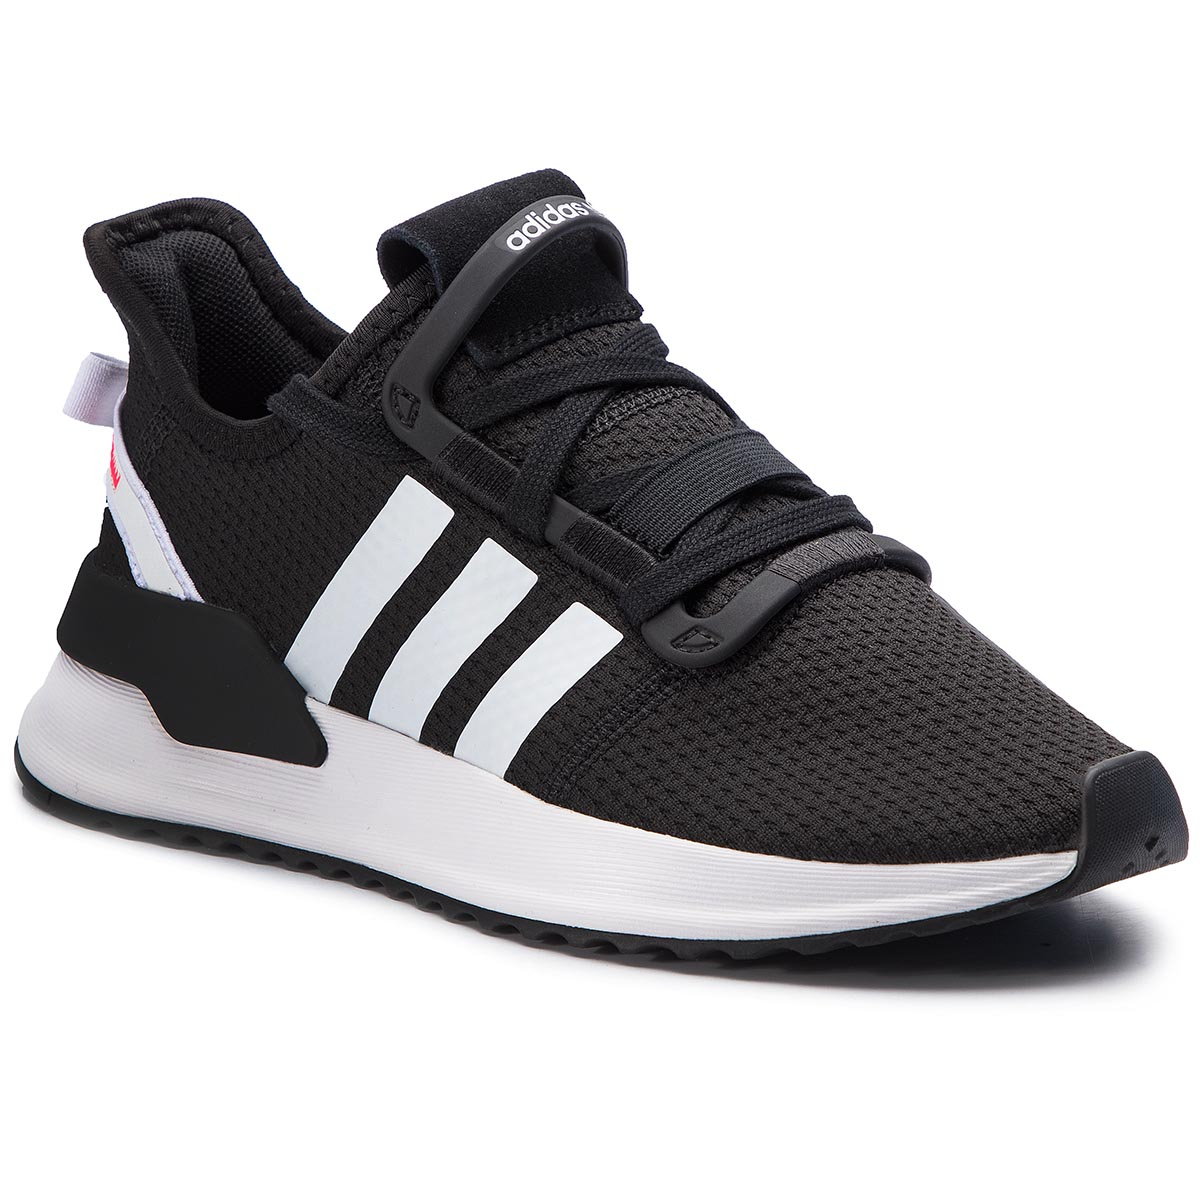 Buty adidas – U Path Run J G28108 Cblack/Ftwwht/Shored